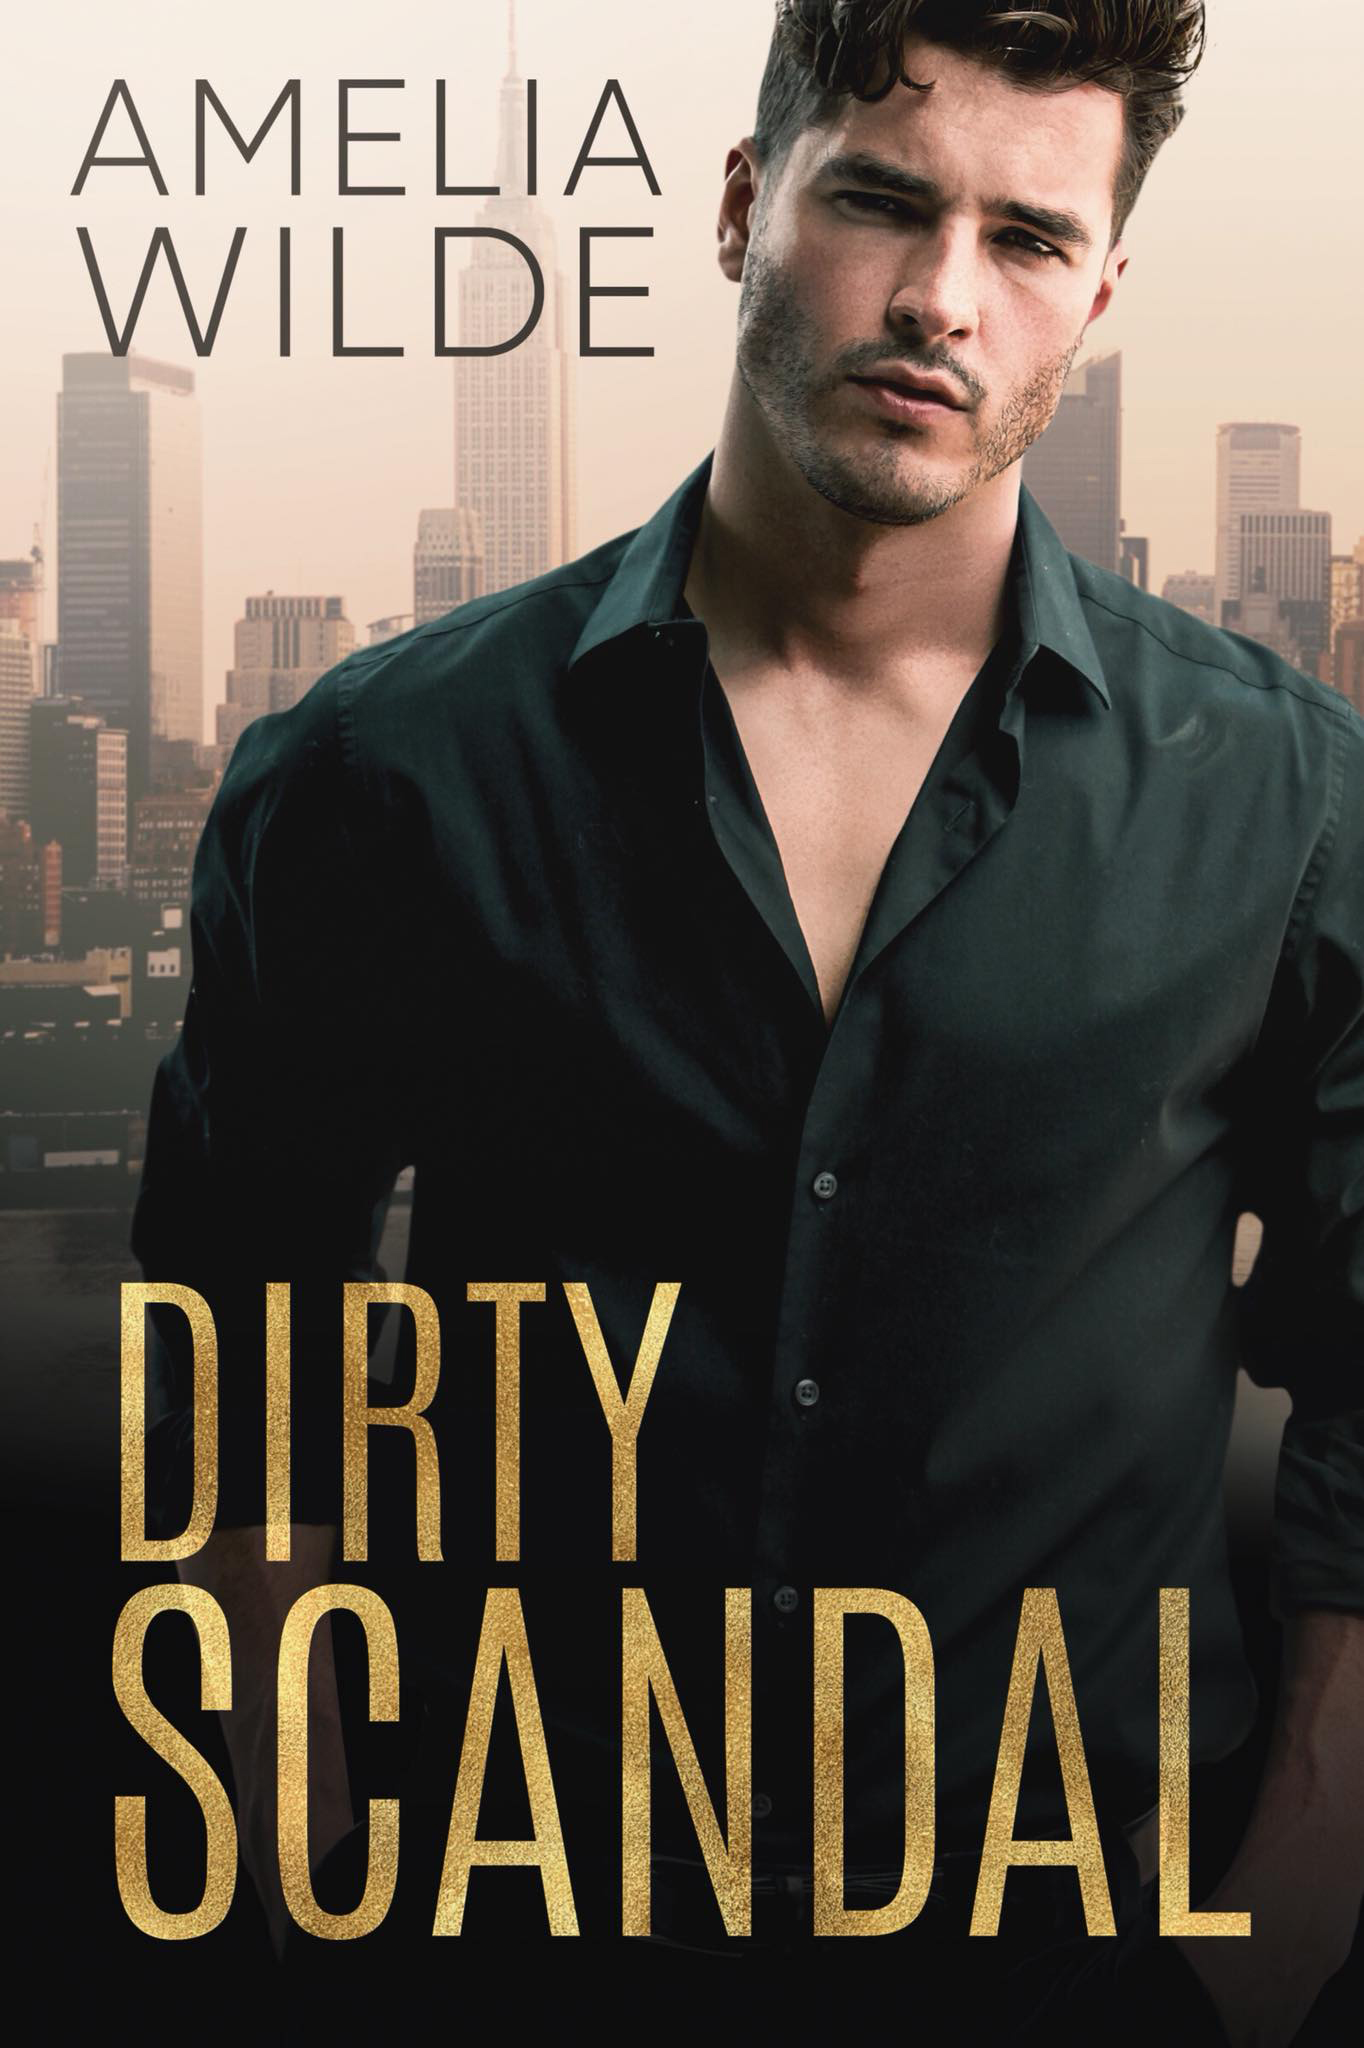 DIRTY SCANDAL